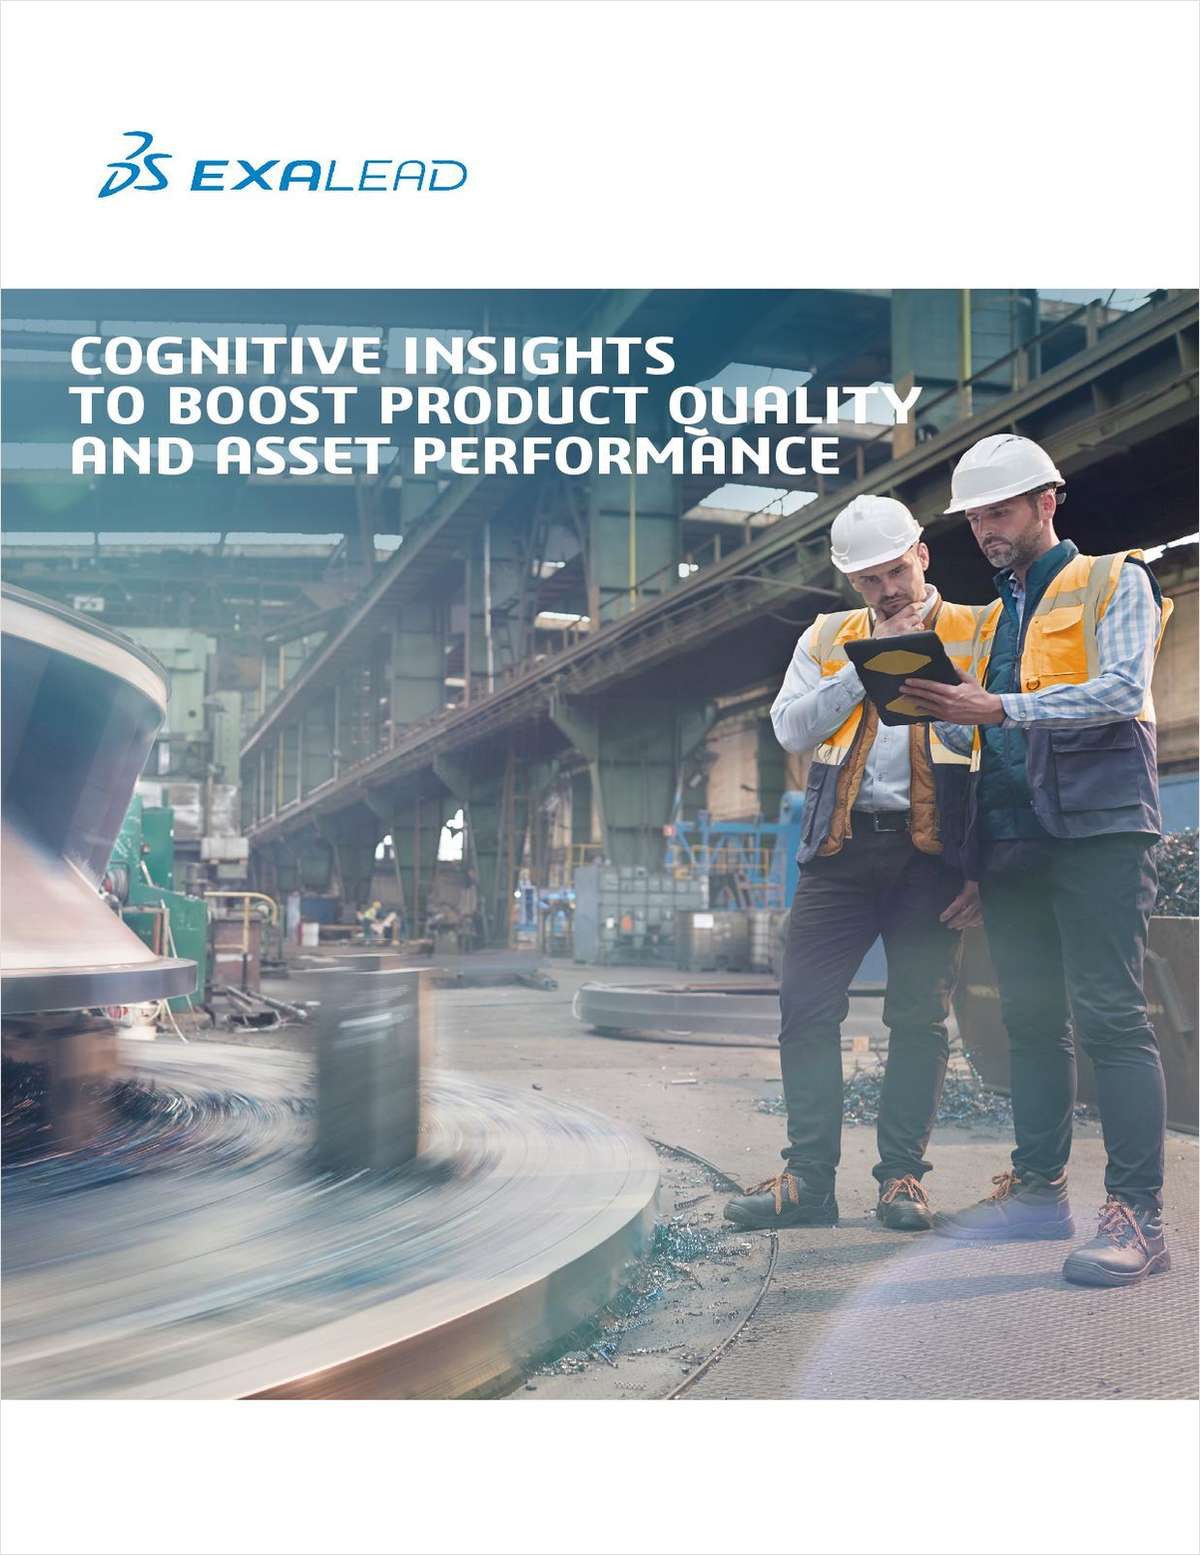 Cognitive Insights to Boost Product Quality & Asset Performance